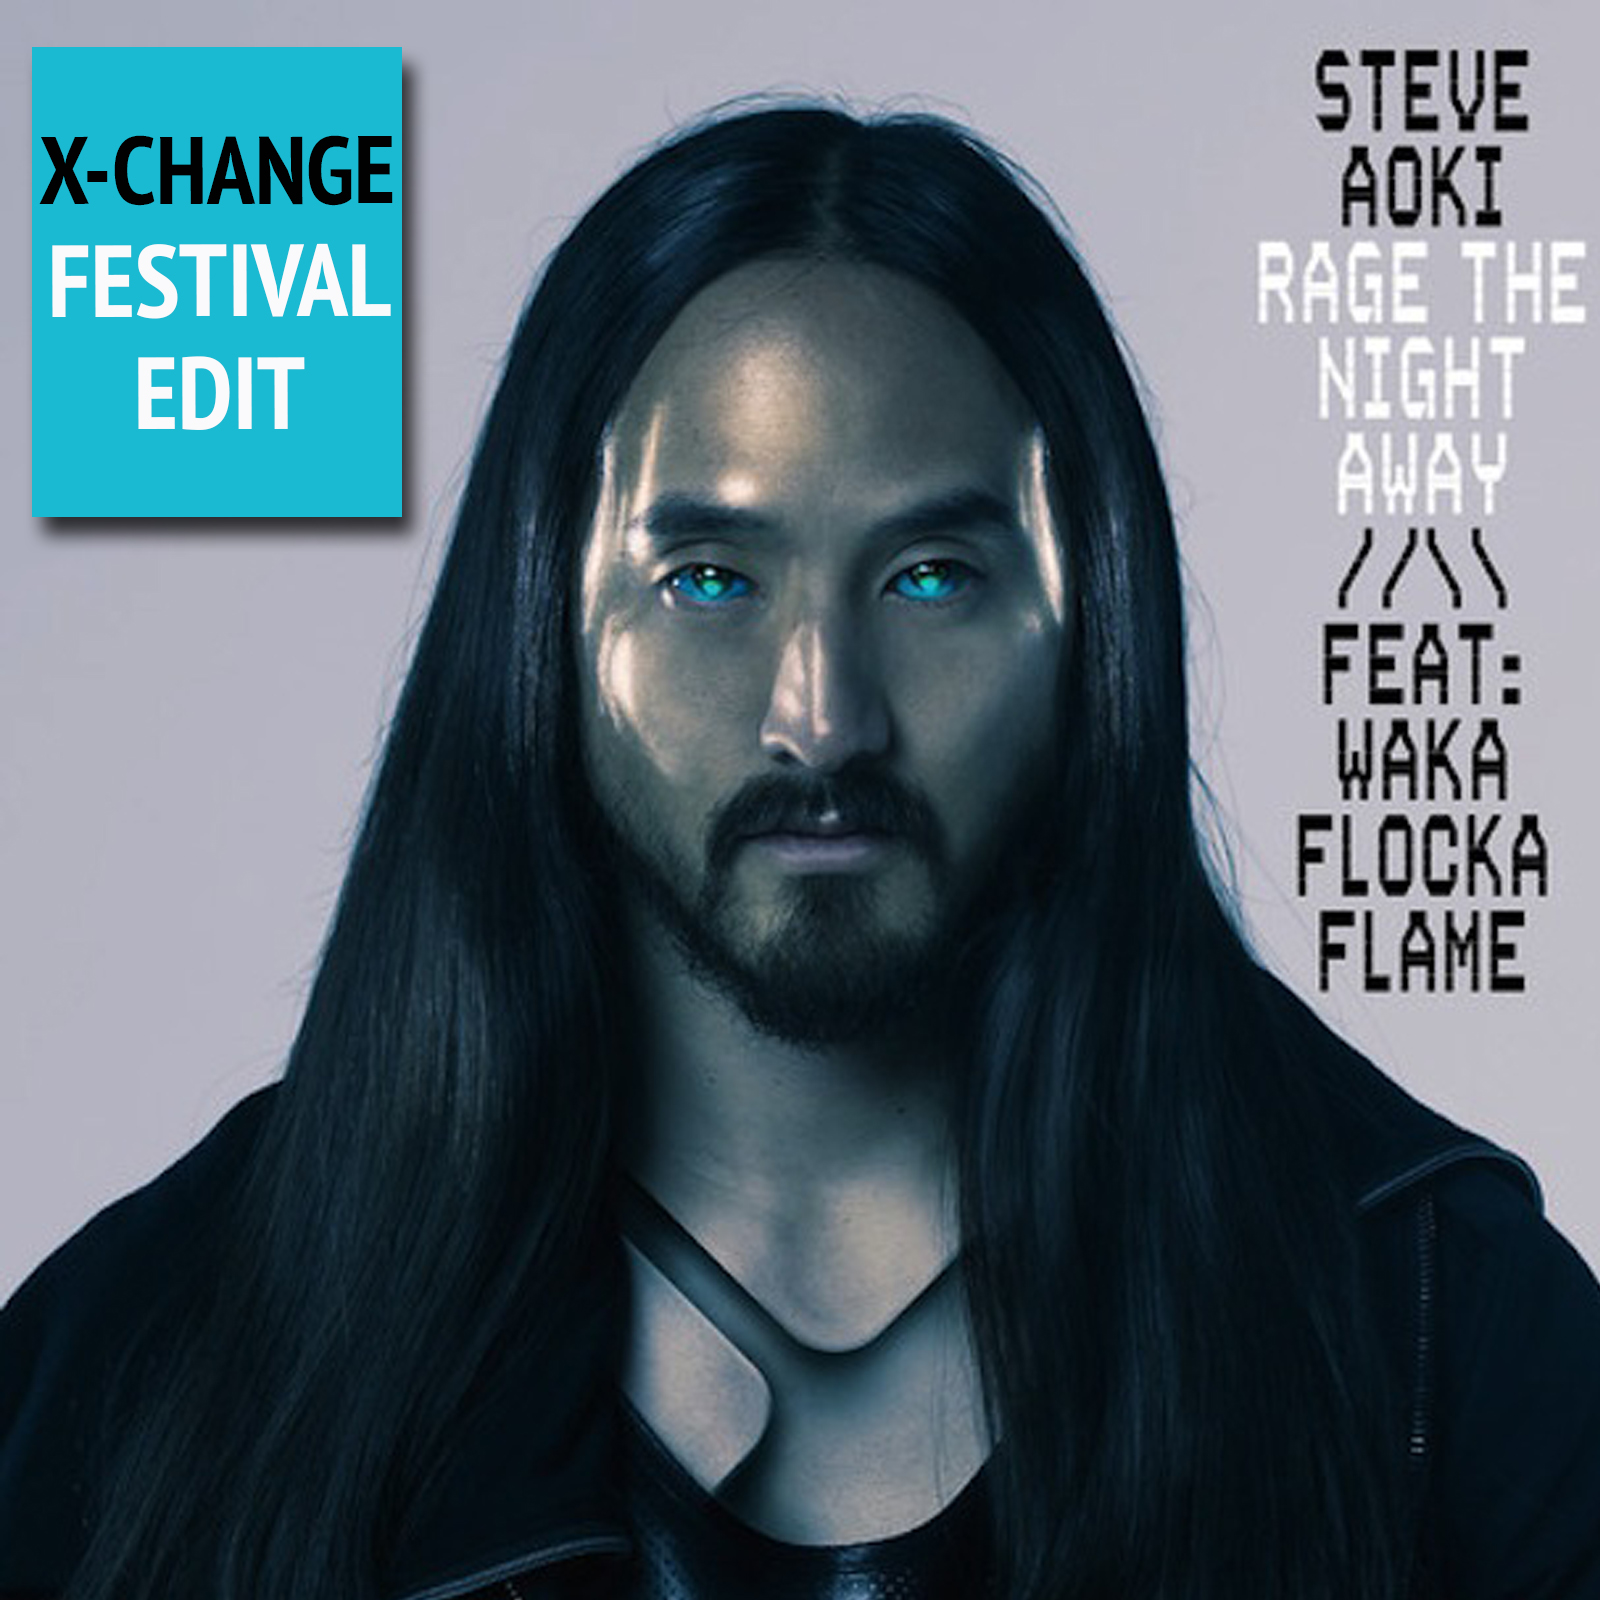 Free Download: Steve Aoki – Rage The Night Away (X-Change Festival Edit)